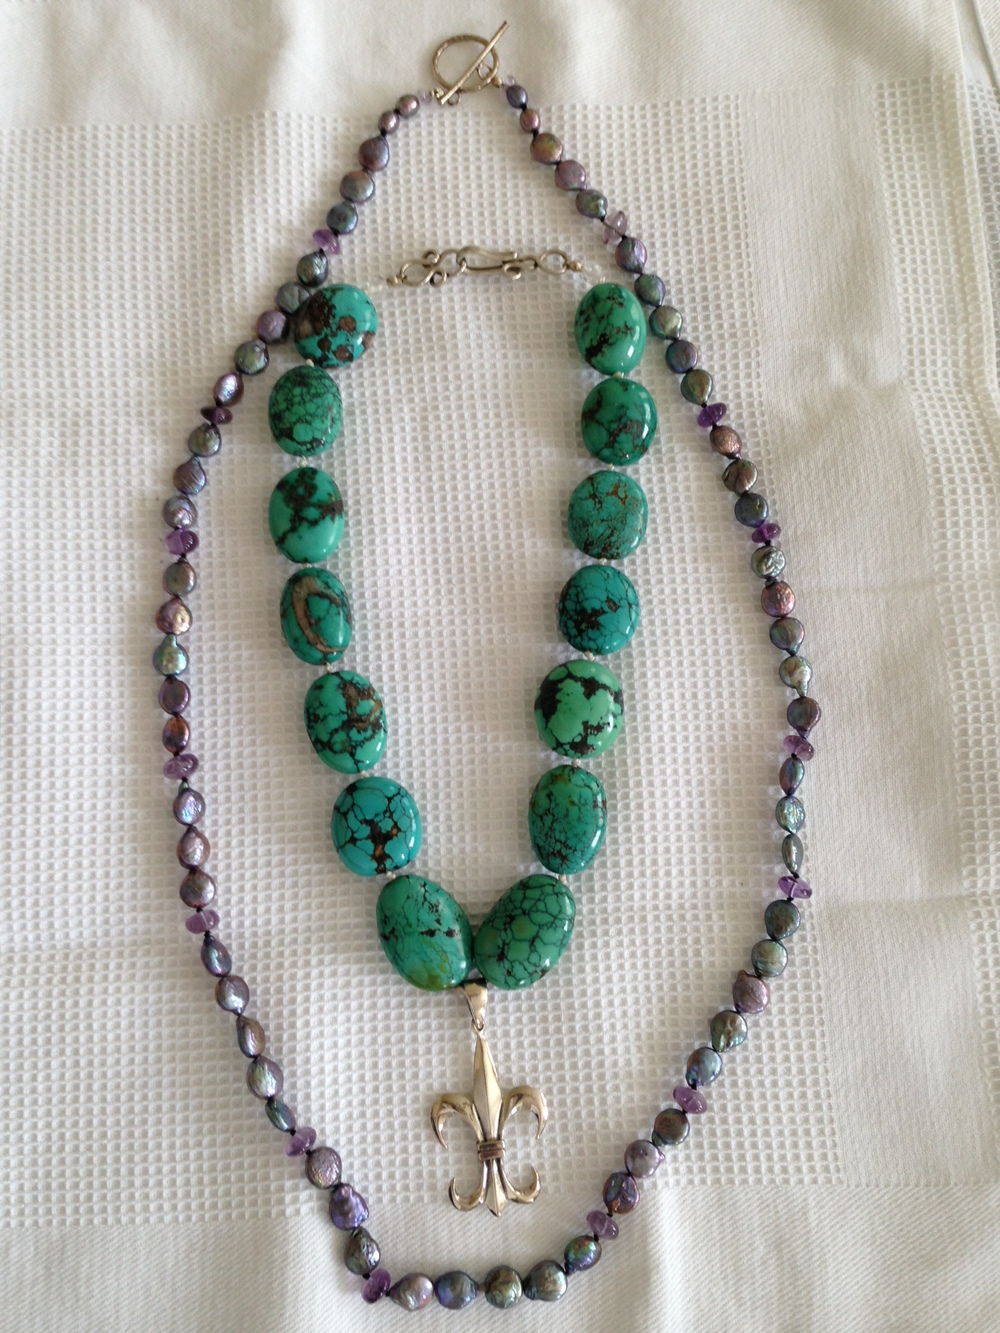 "20"" Turquoise necklace with sterling gold fleur de lis drop and sterling silver clasp knotted on silk cord. Freshwater peacock coin pearl necklace with amethyst rondells and sterling silver toggle clasp knotted on silk cord. Value: $500.00."